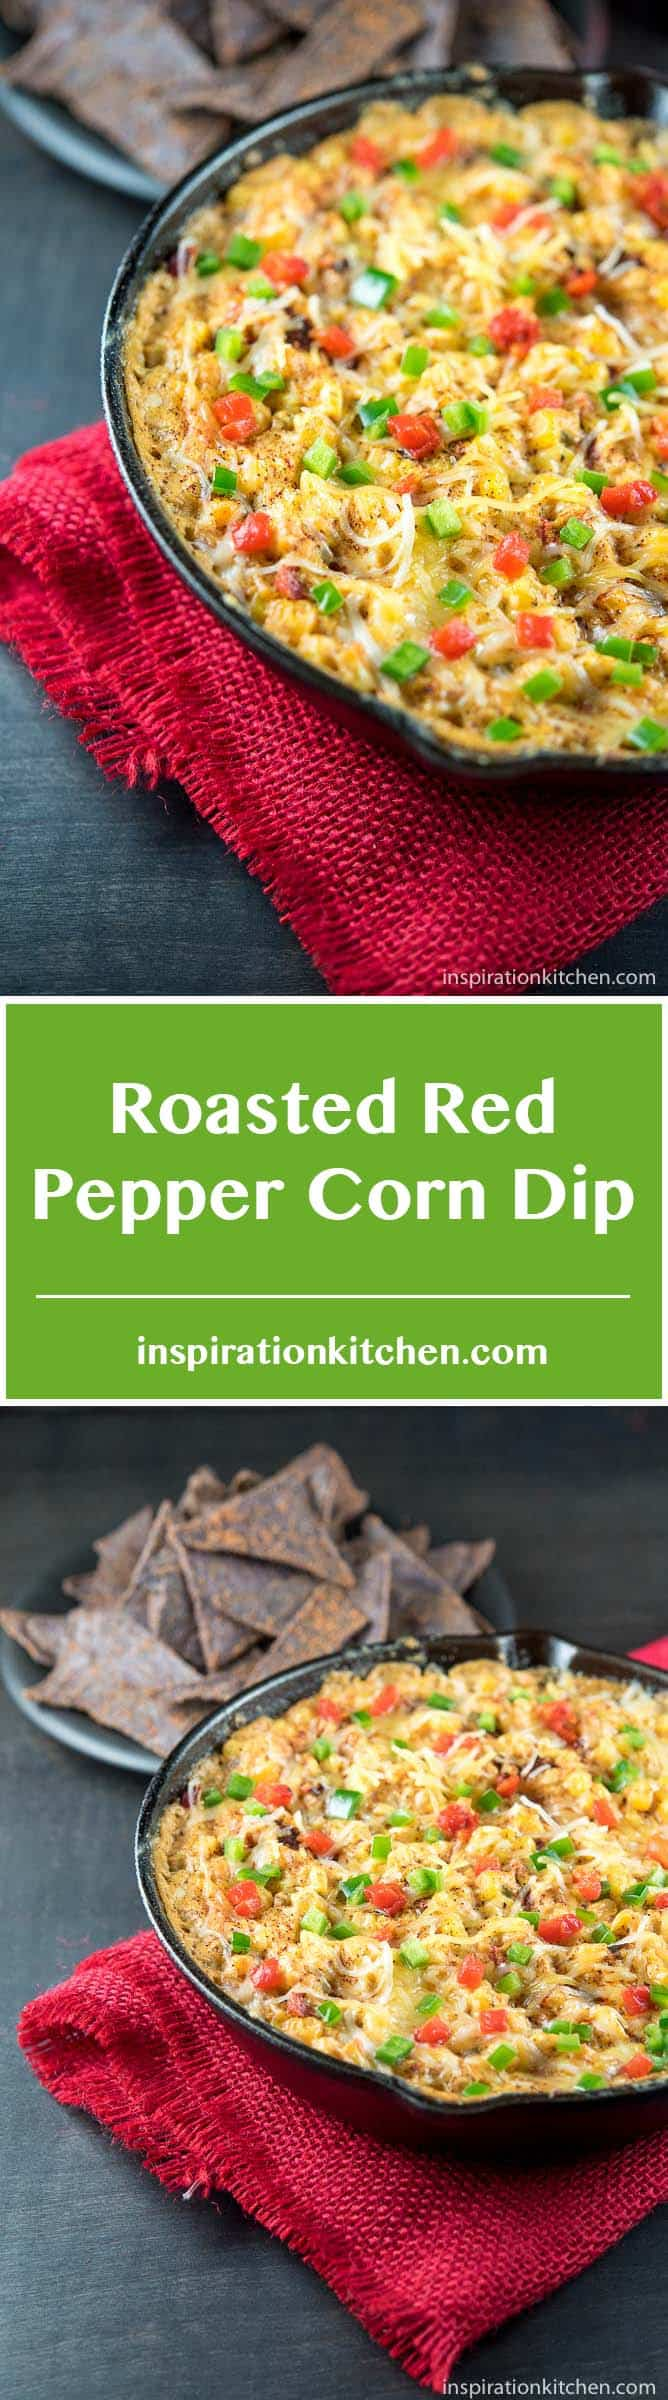 Roasted Red Pepper Corn Dip - inspirationkitchen.com